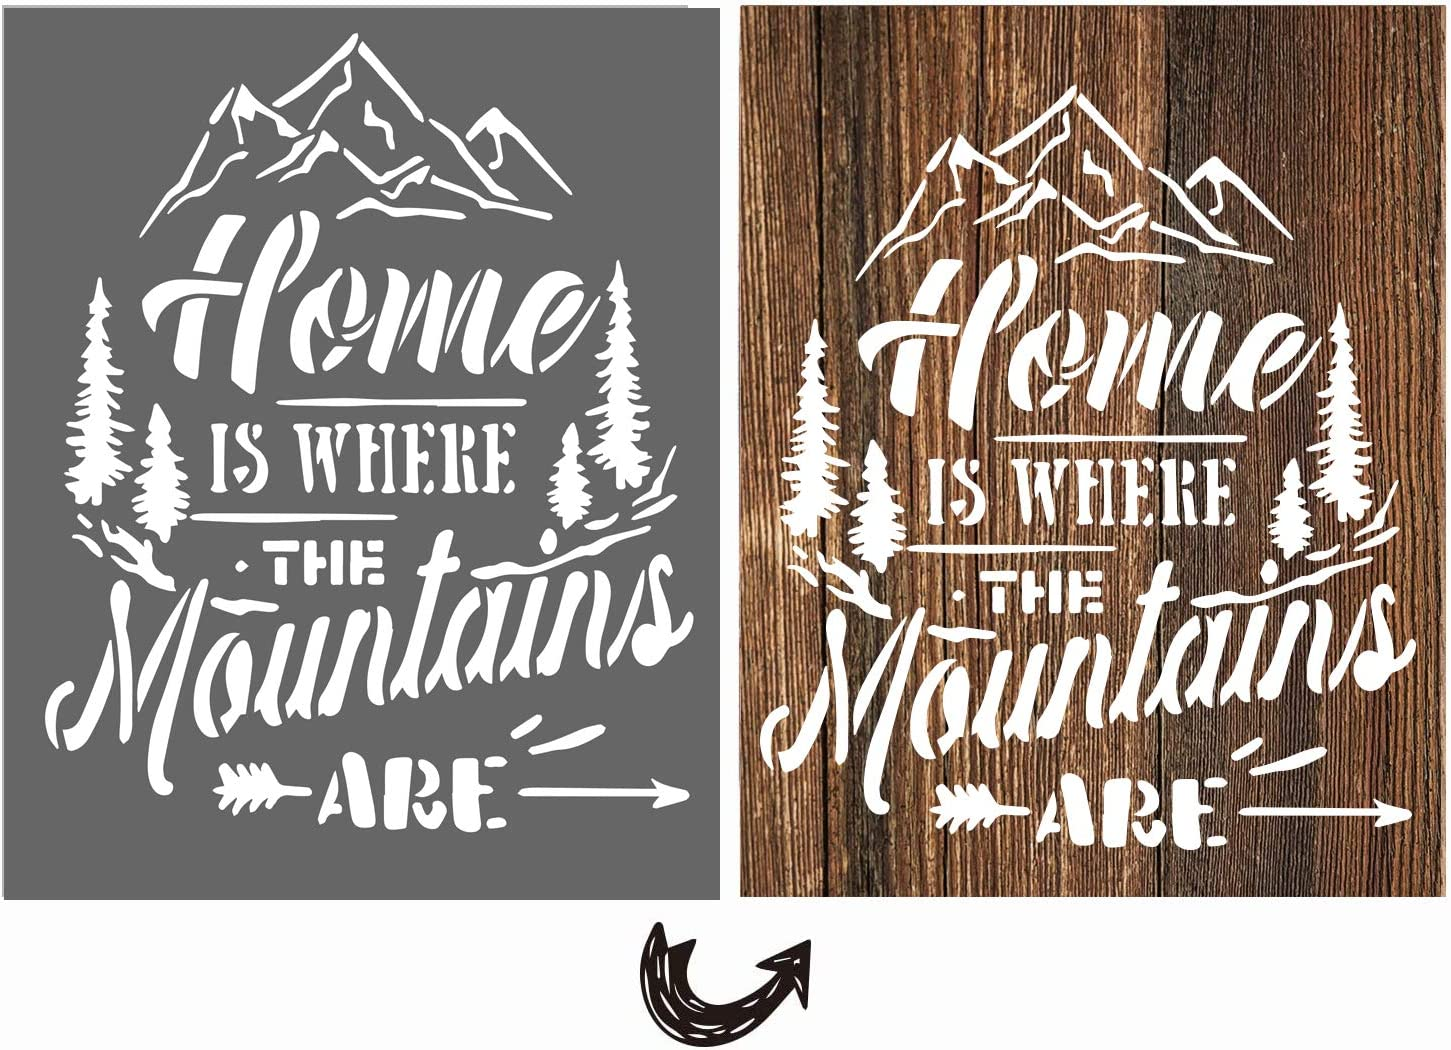 vizuzi Home Is Where The Mountains Are Sign Stencils - Home Decor Rustic Farmhouse Inspirational Template for Painting Spraying Wood Floors Furniture Paper Window Glass Door Wall Sign Crafts